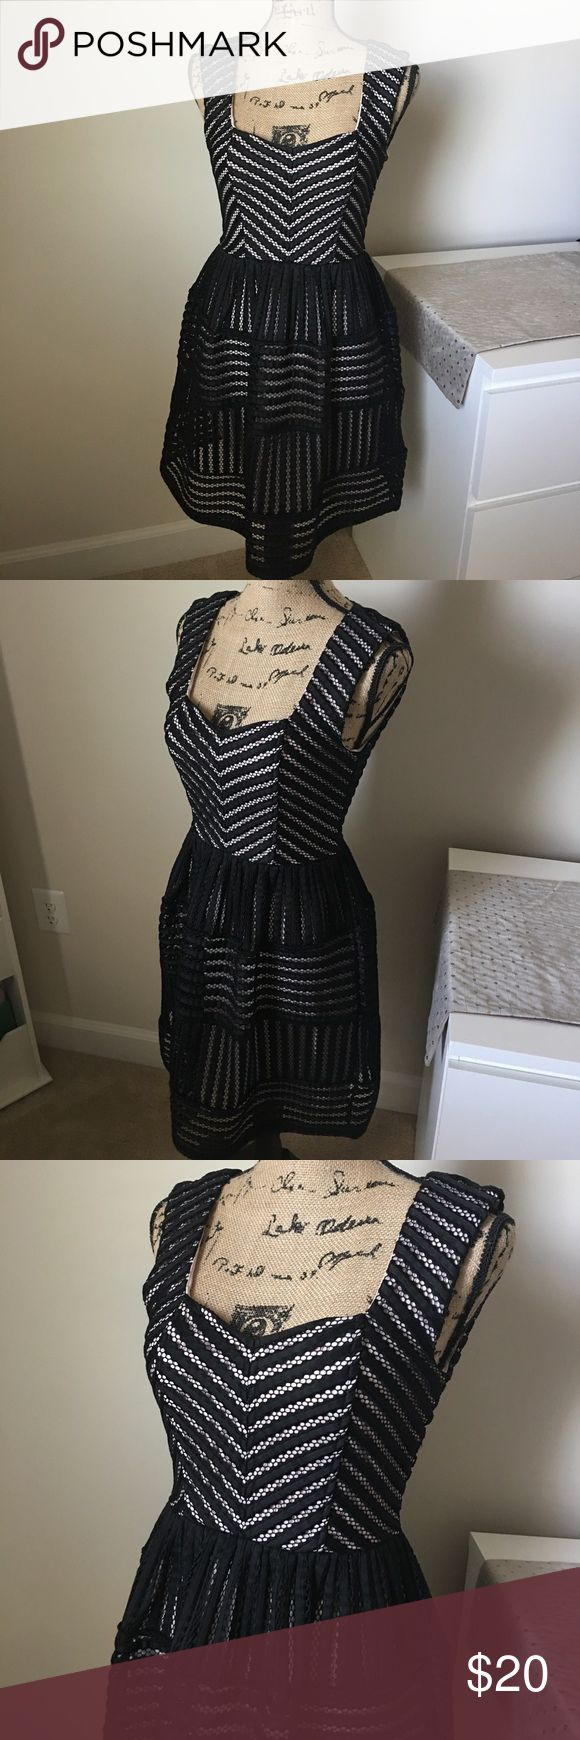 FANCY black/nude dress BEAUTIFUL SEXY going out dress! Great condition. NEVER WORN. No stains/holes! Layered underneath with a light nude color. Zips up in the back. Charlotte Russe Dresses